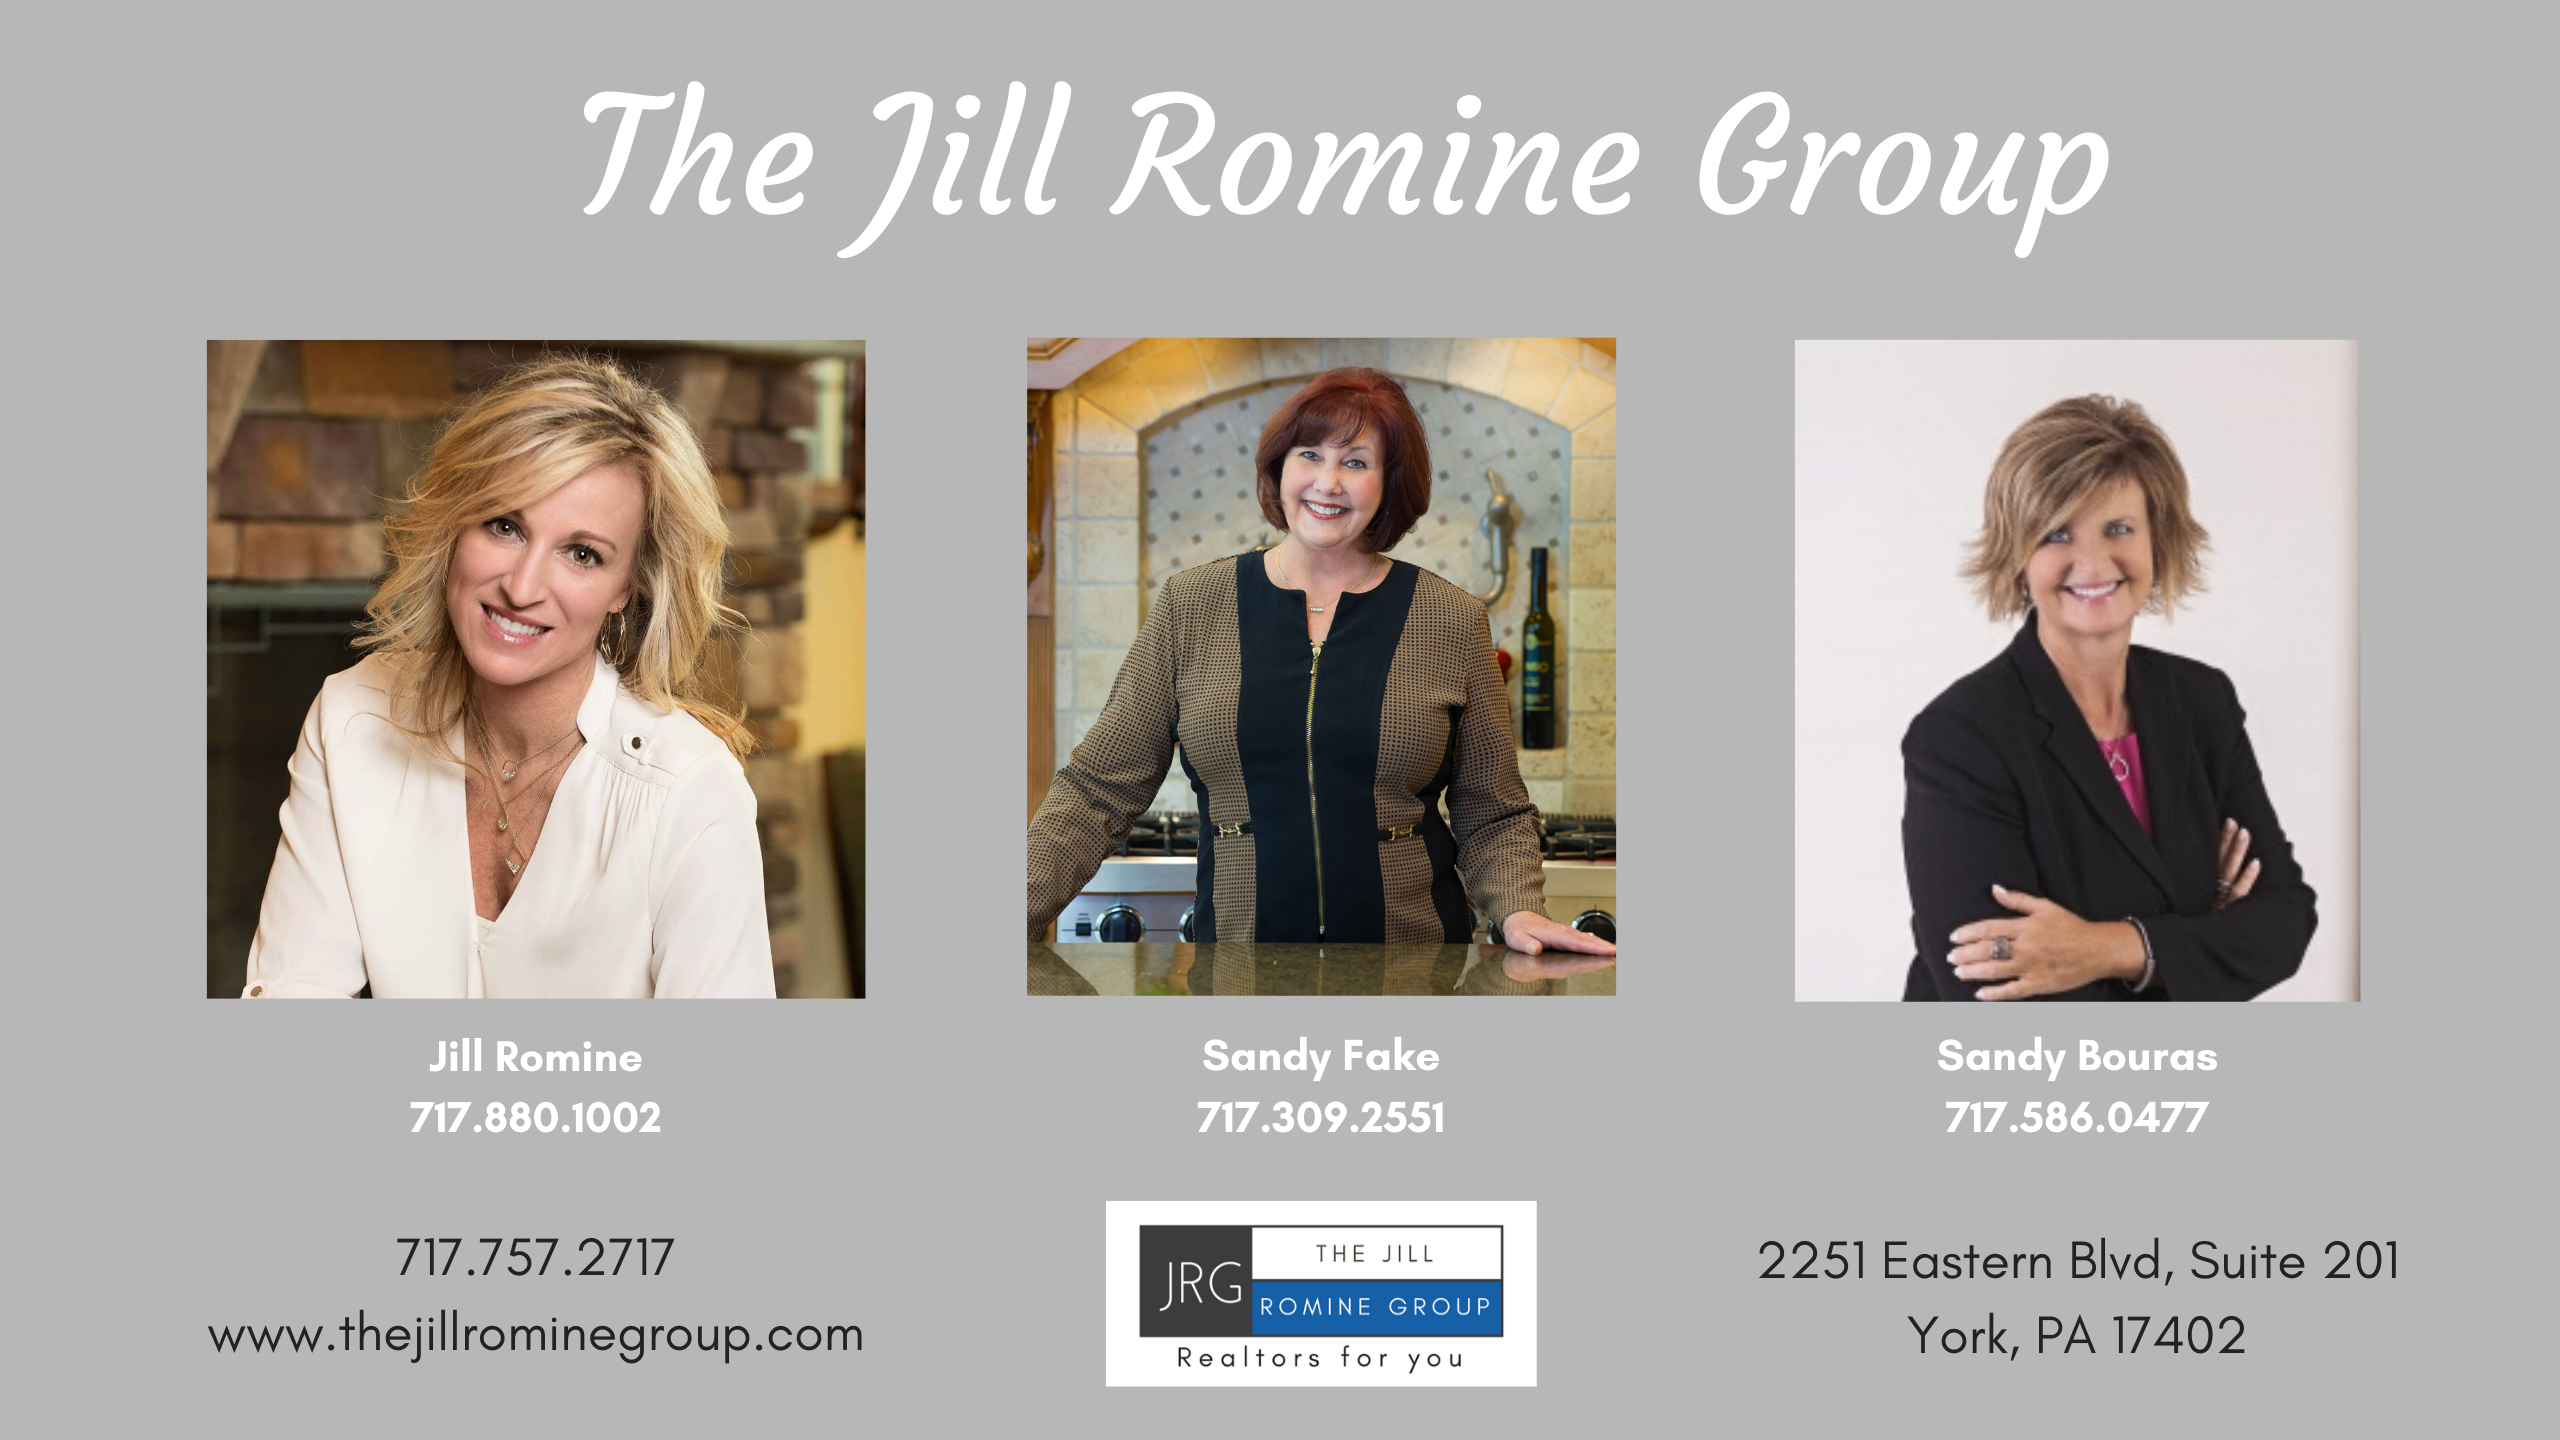 The Jill Romine Group